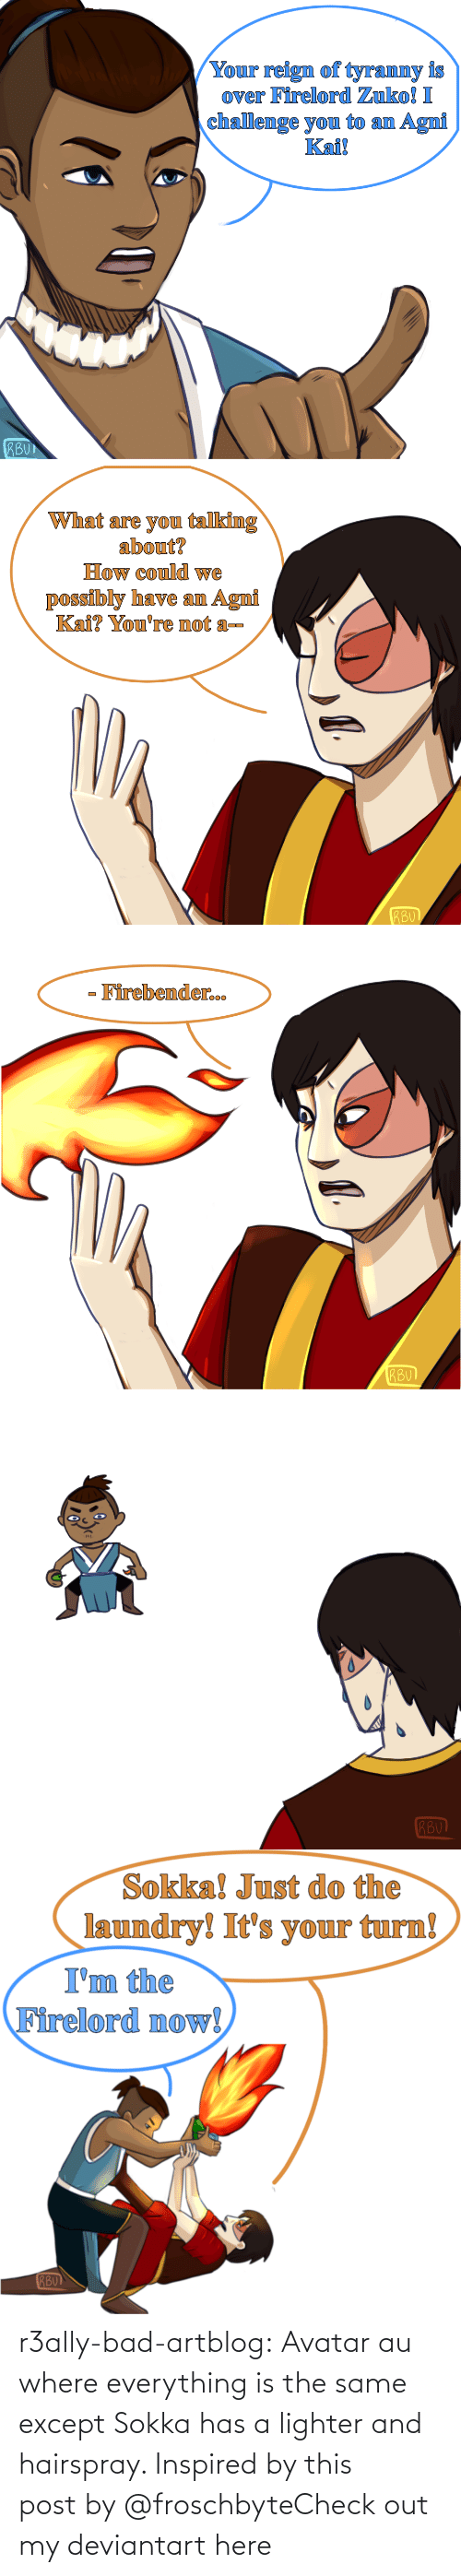 same: r3ally-bad-artblog:  Avatar au where everything is the same except Sokka has a lighter and hairspray. Inspired by this post by @froschbyteCheck out my deviantart here